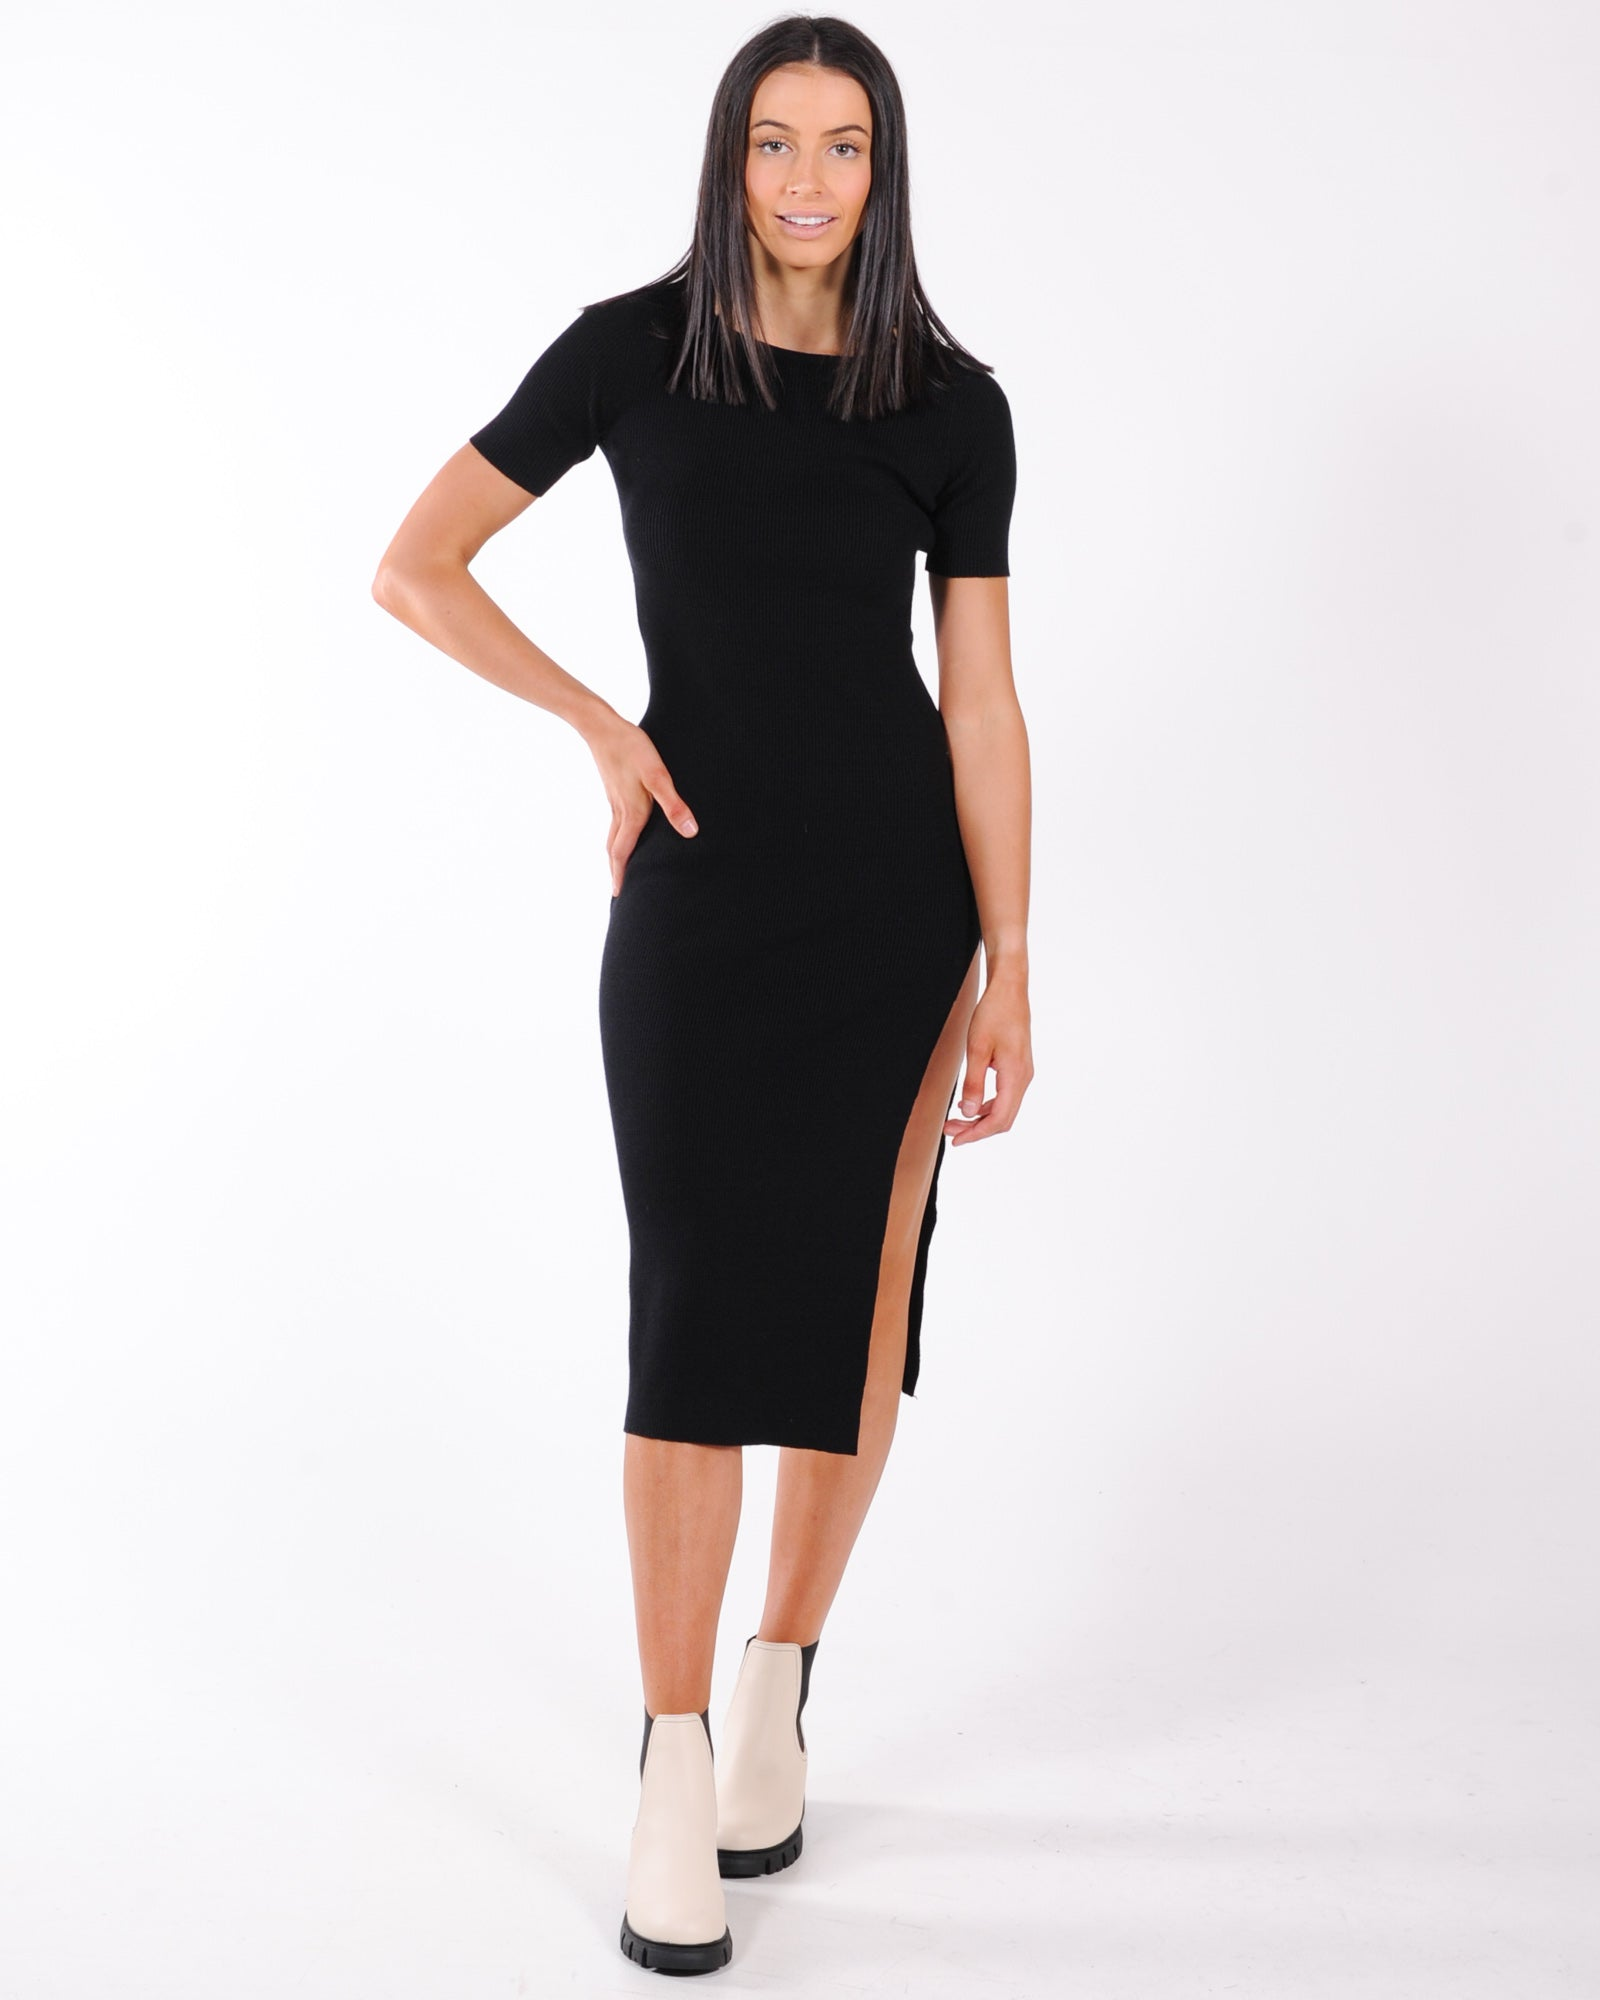 Best Of Both Worlds Knit Dress - Black